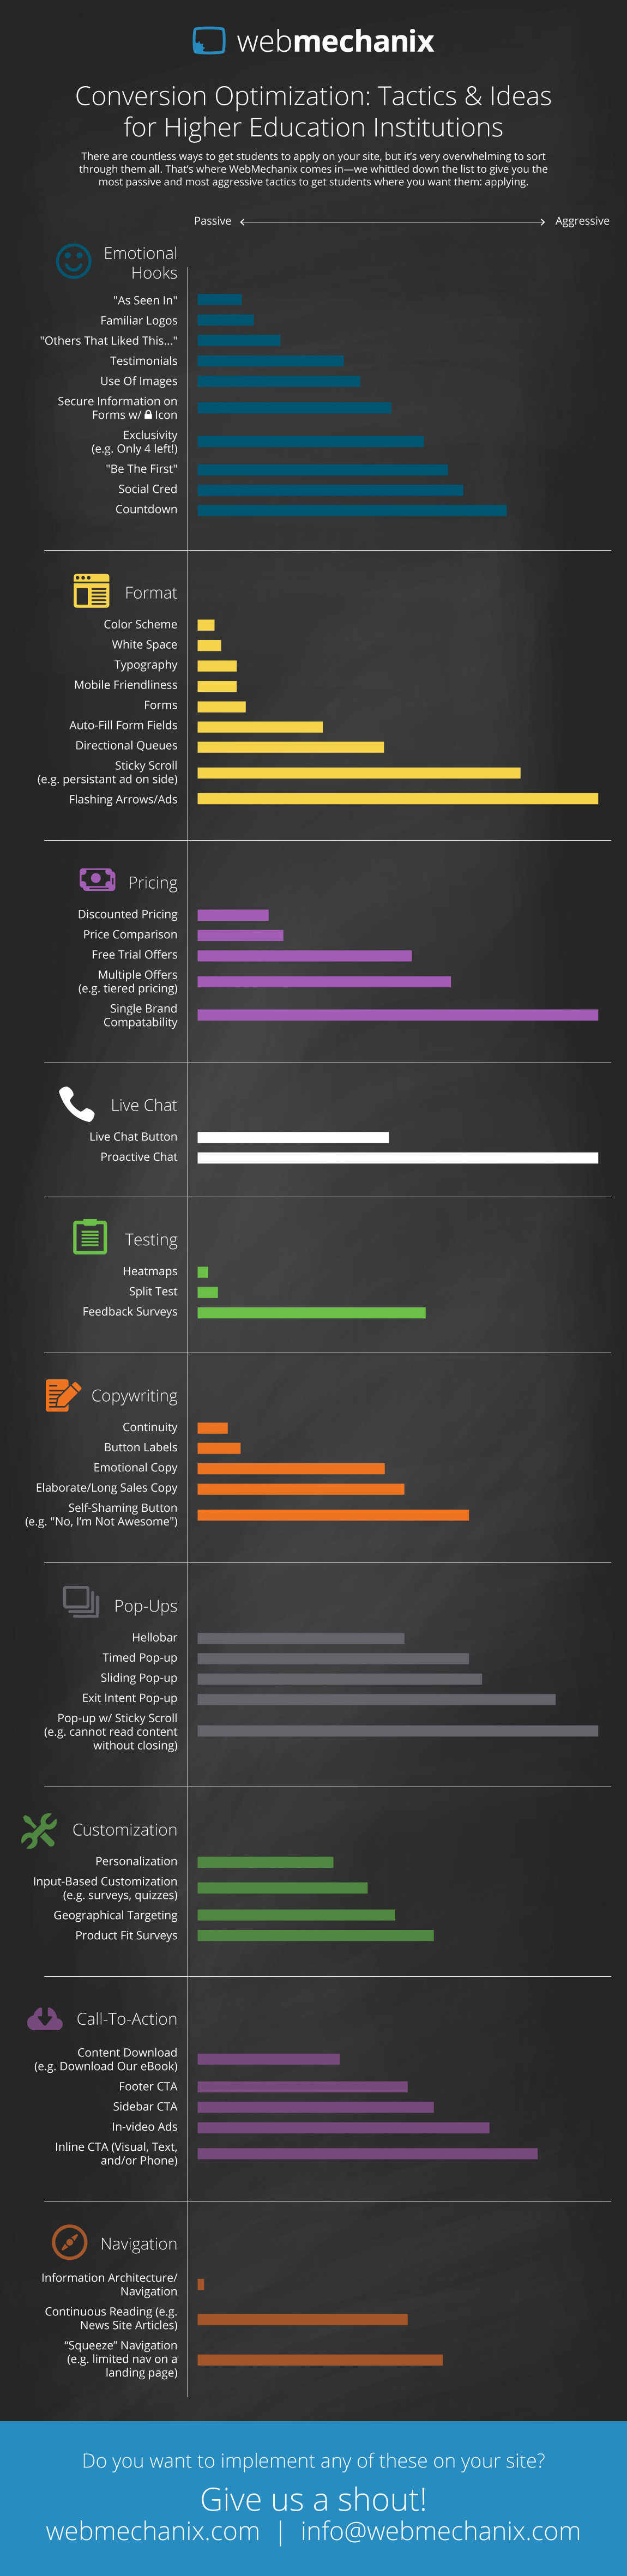 Higher Education Lead Generation Infographic